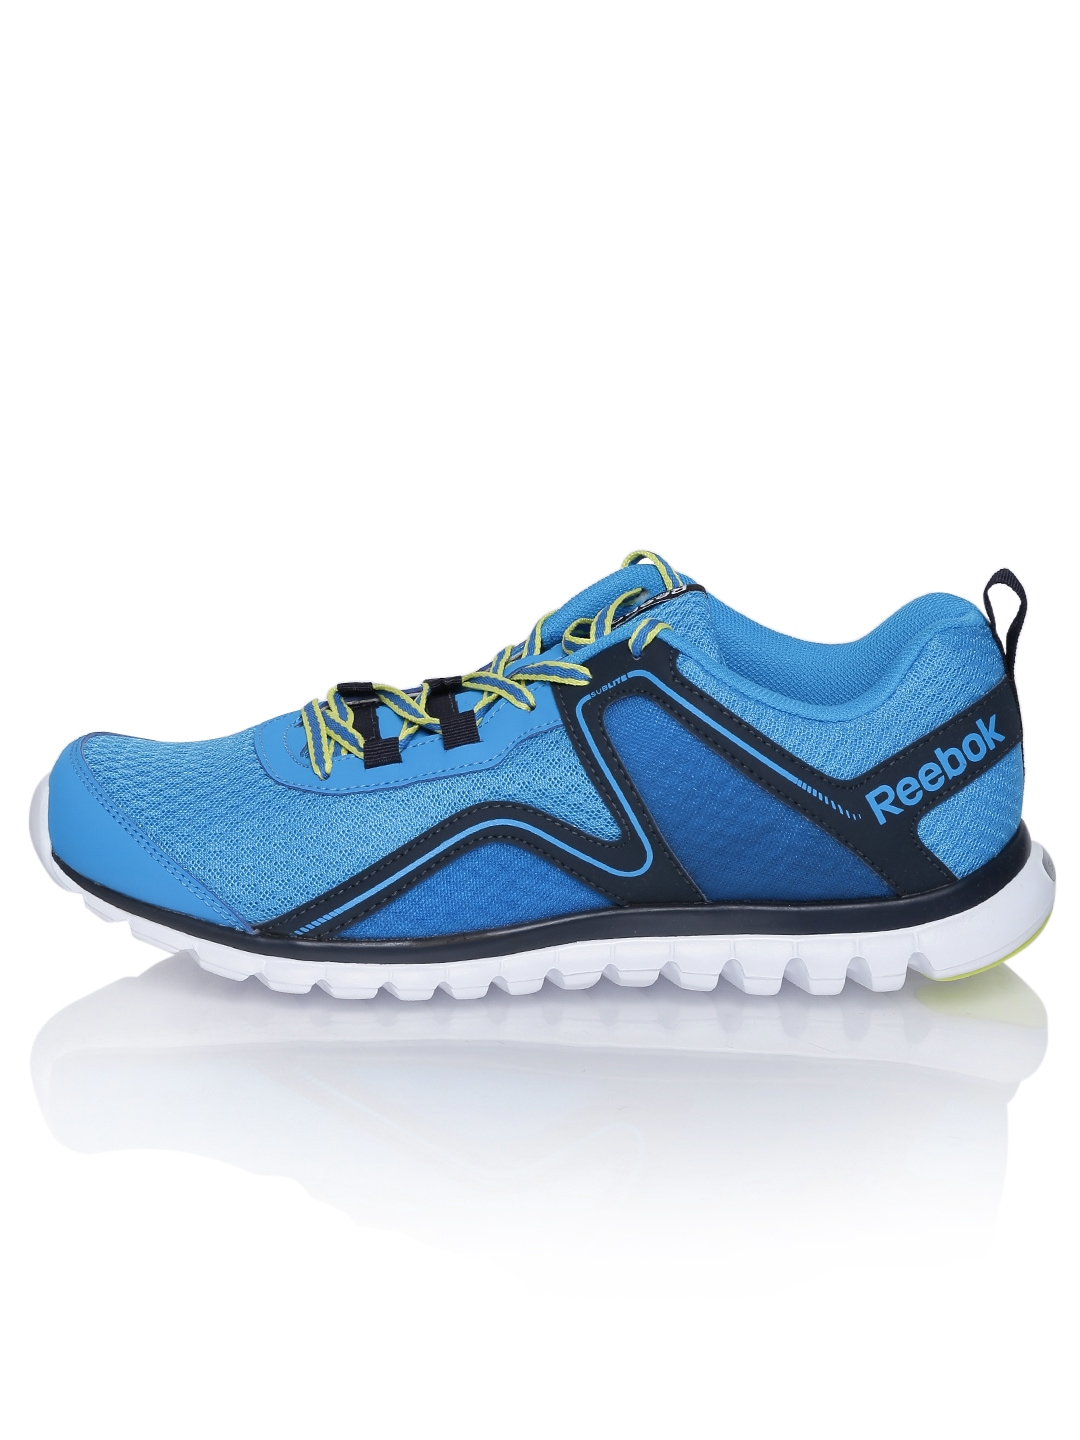 Men S Reebok Sublite Escape   Running Shoes